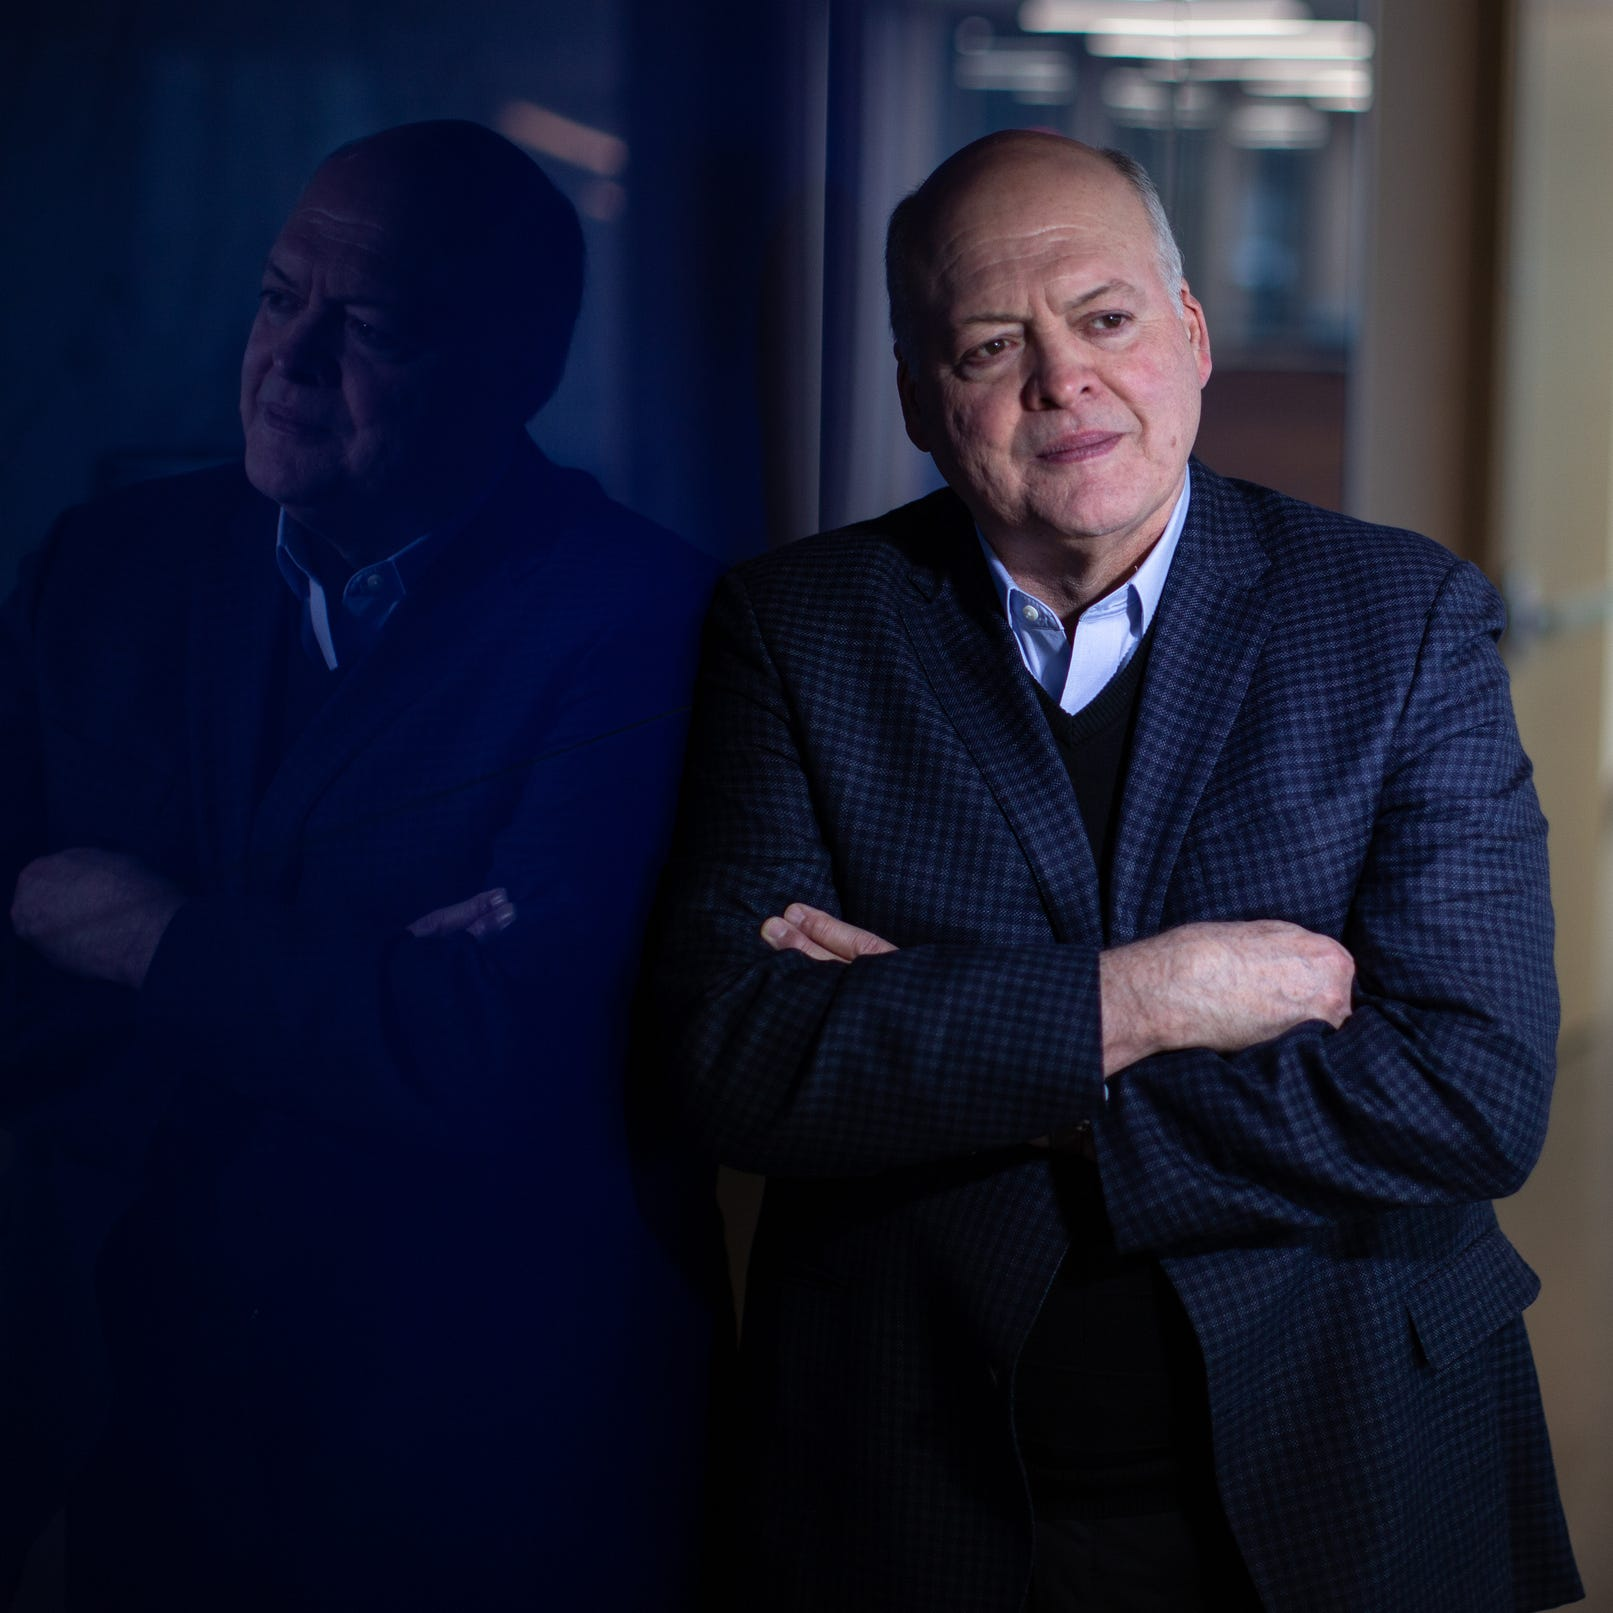 Ford CEO Jim Hackett sees pay raise, gets 276 times median employee in 2018